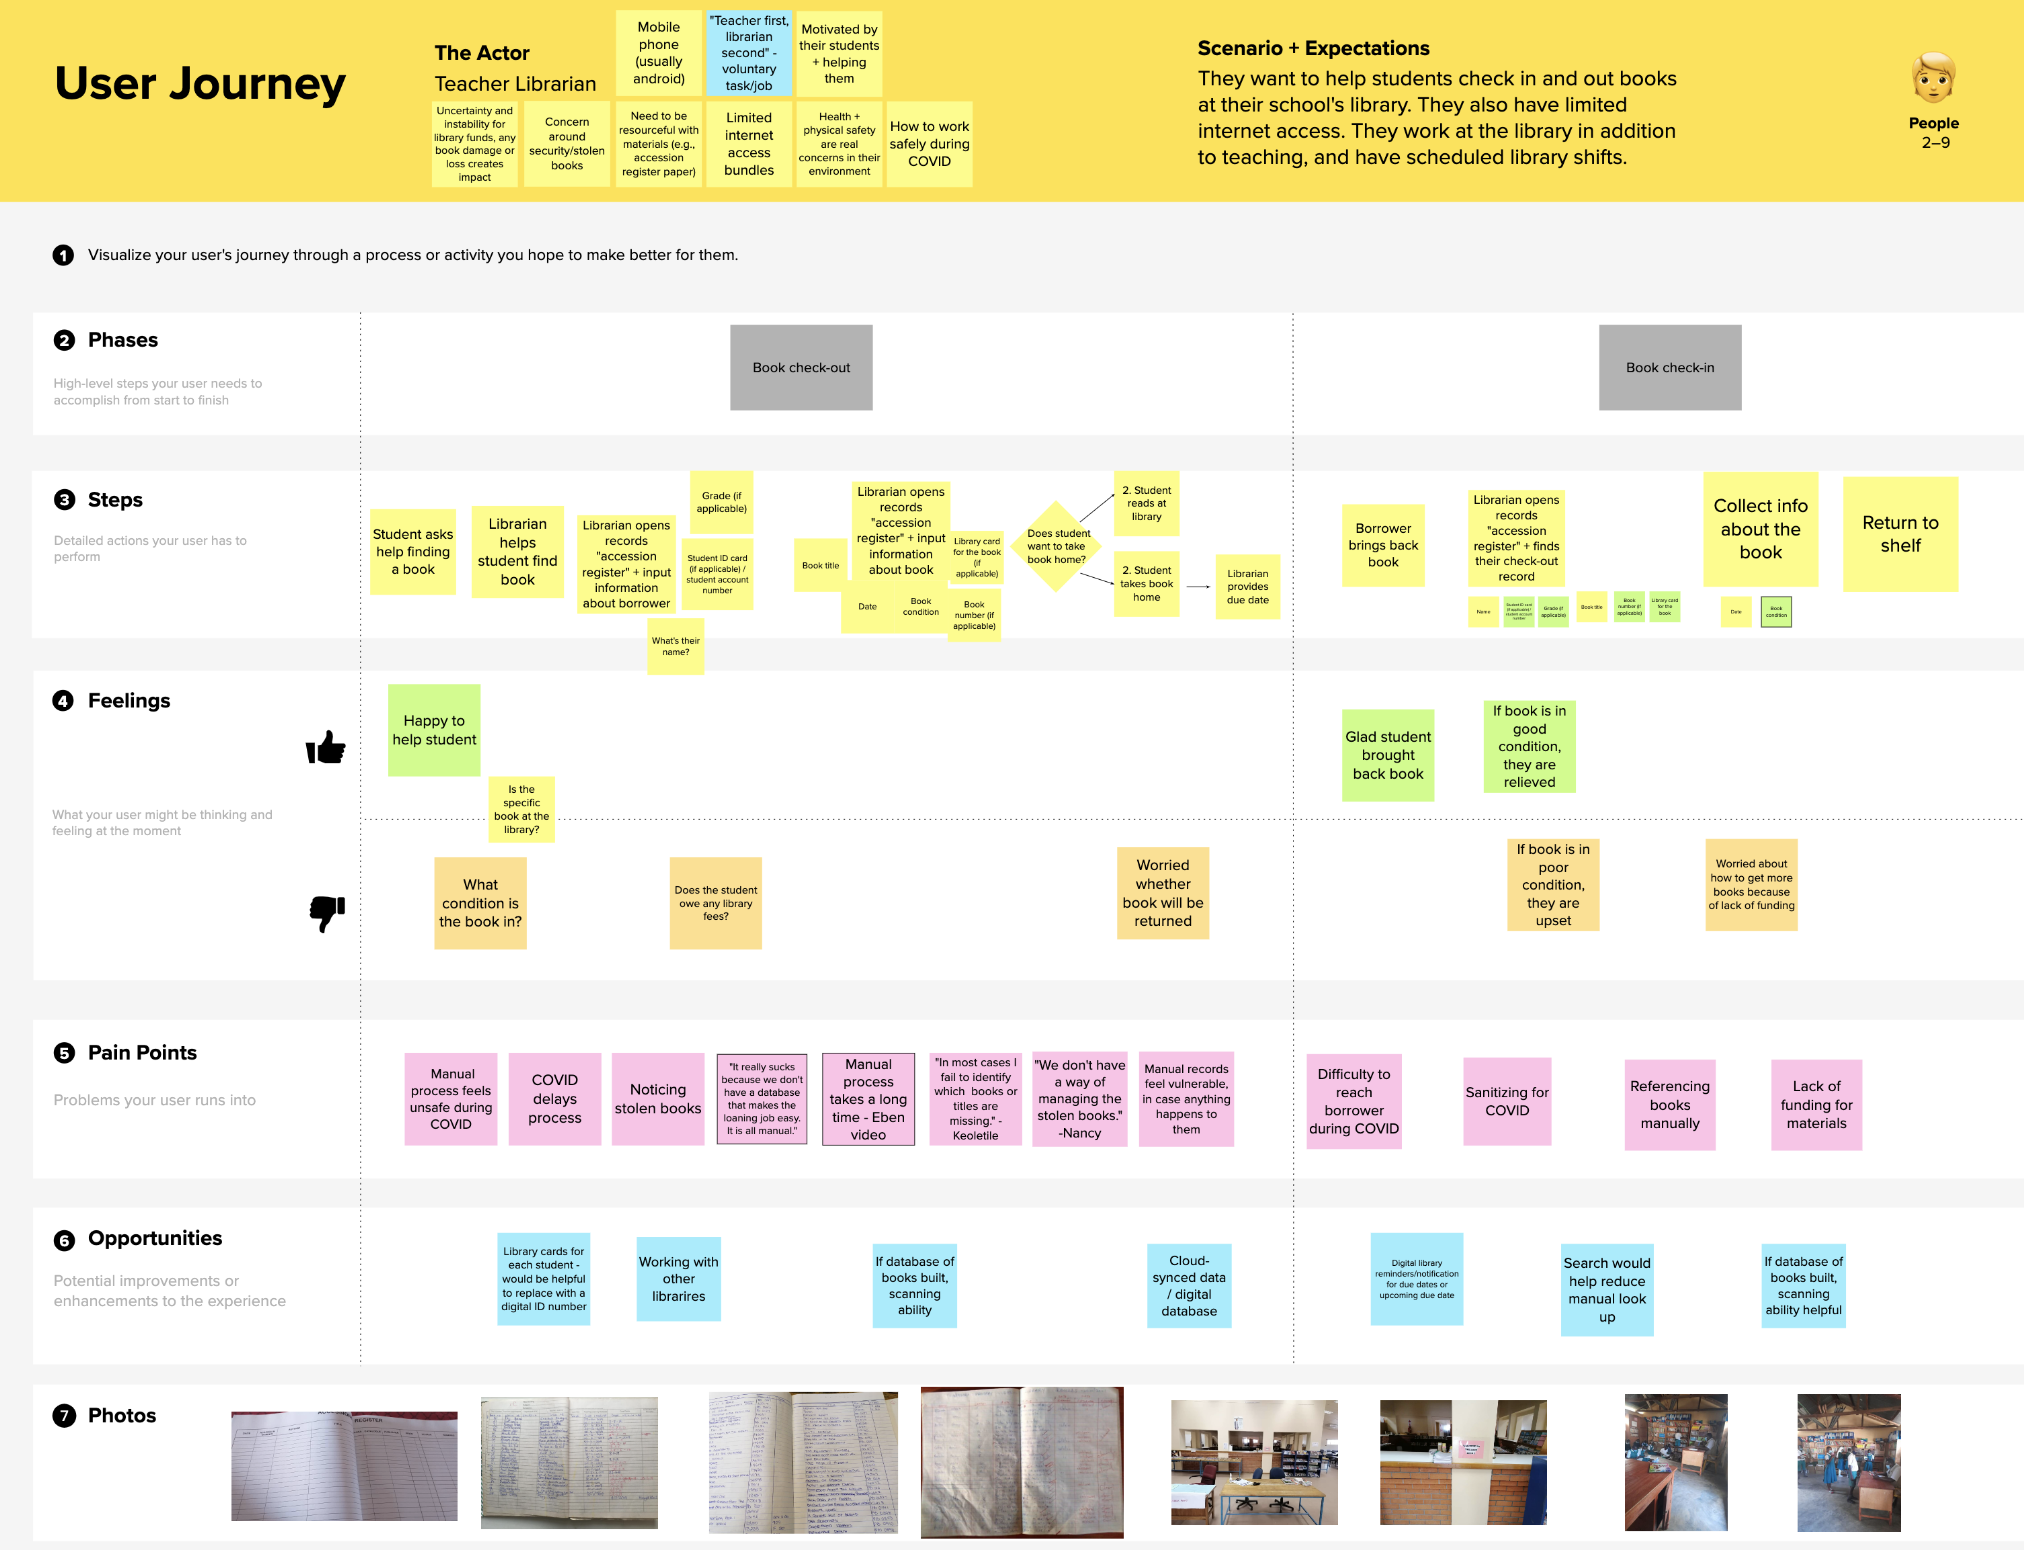 Notes and raw data for the journey map of the teacher librarian.